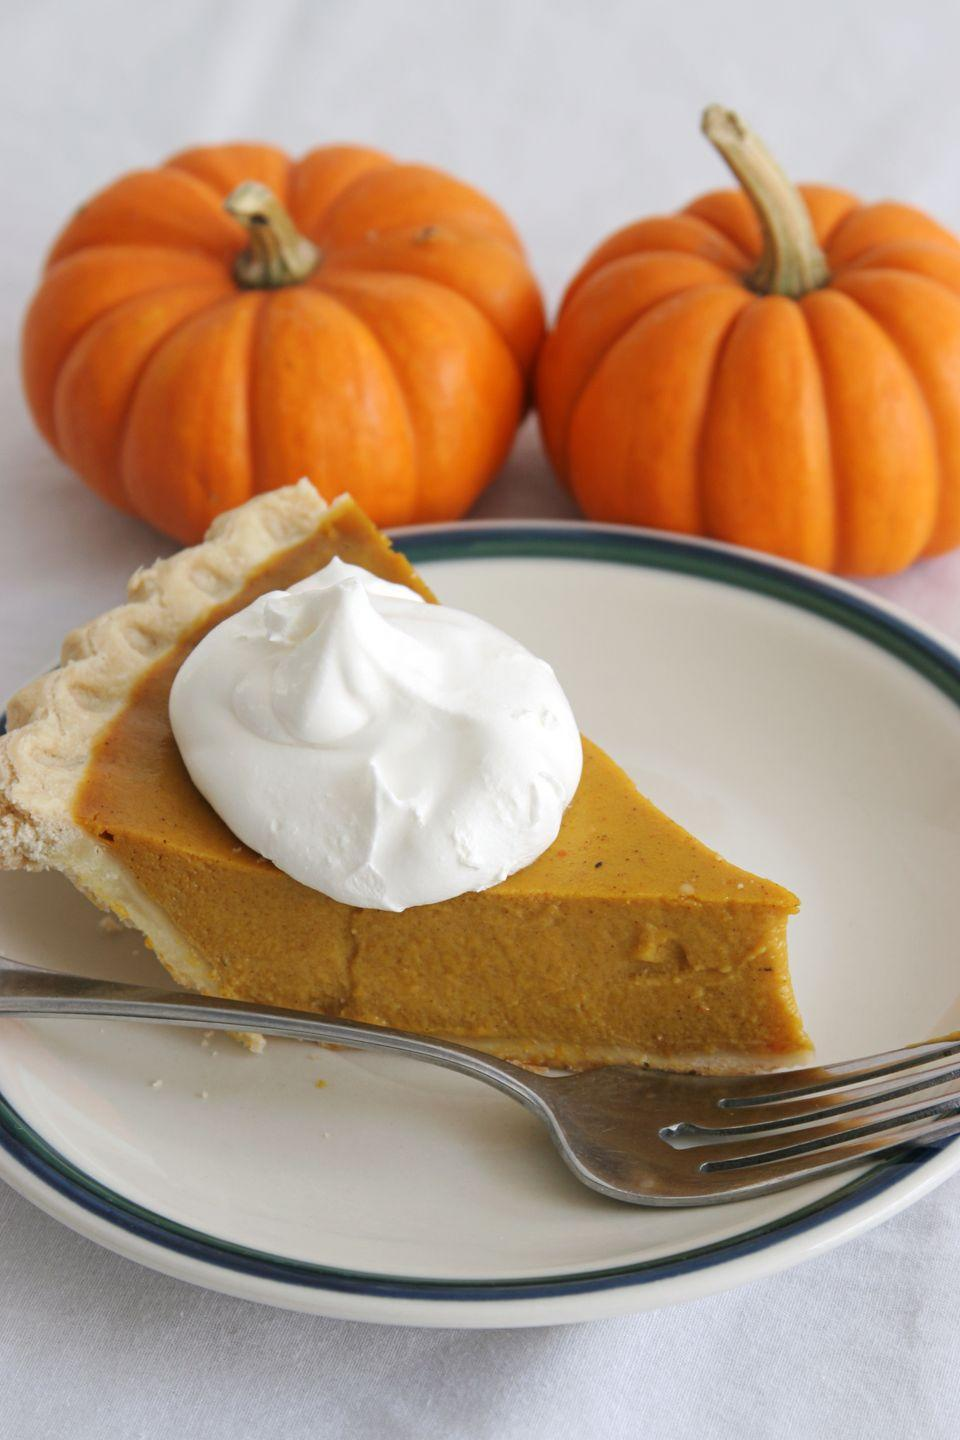 "<p><a href=""https://www.goodhousekeeping.com/food-recipes/g3986/pumpkin-pie-recipes/"" rel=""nofollow noopener"" target=""_blank"" data-ylk=""slk:Pumpkin pie"" class=""link rapid-noclick-resp"">Pumpkin pie</a> and whipped cream have a long history together, but fluffy Cool Whip didn't come onto the scene until 1966. By 1969, TV and magazine ads were asking consumers ""Why bother with a beater?"" and urging them to try the alternative to the homemade stuff.</p>"